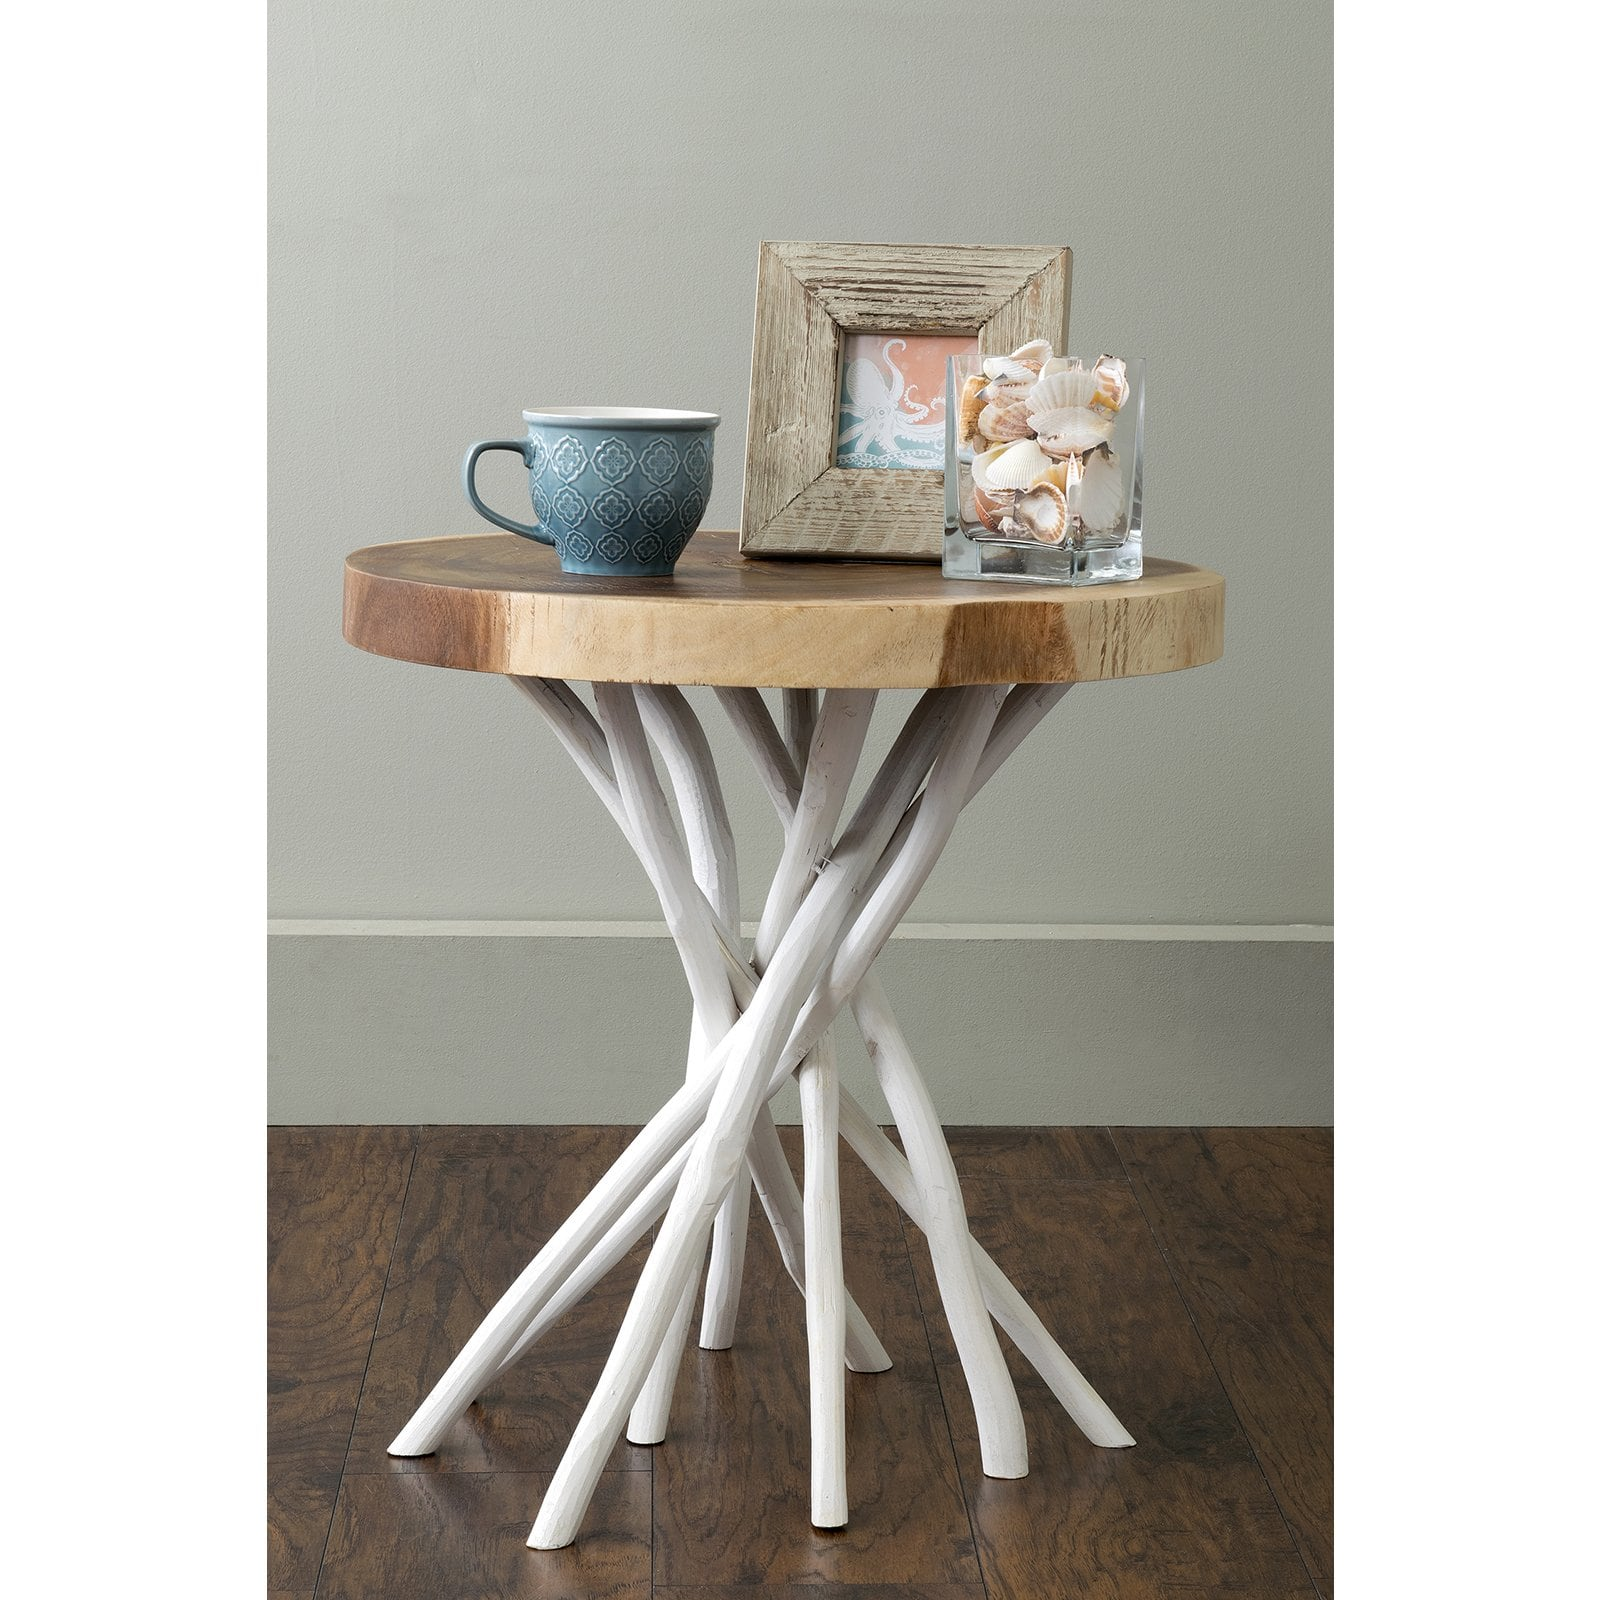 east main joeslin white teakwood round accent table mains wood tall pub and chairs drum end blue tables living room furniture half for hallway metal design small bedside lamps